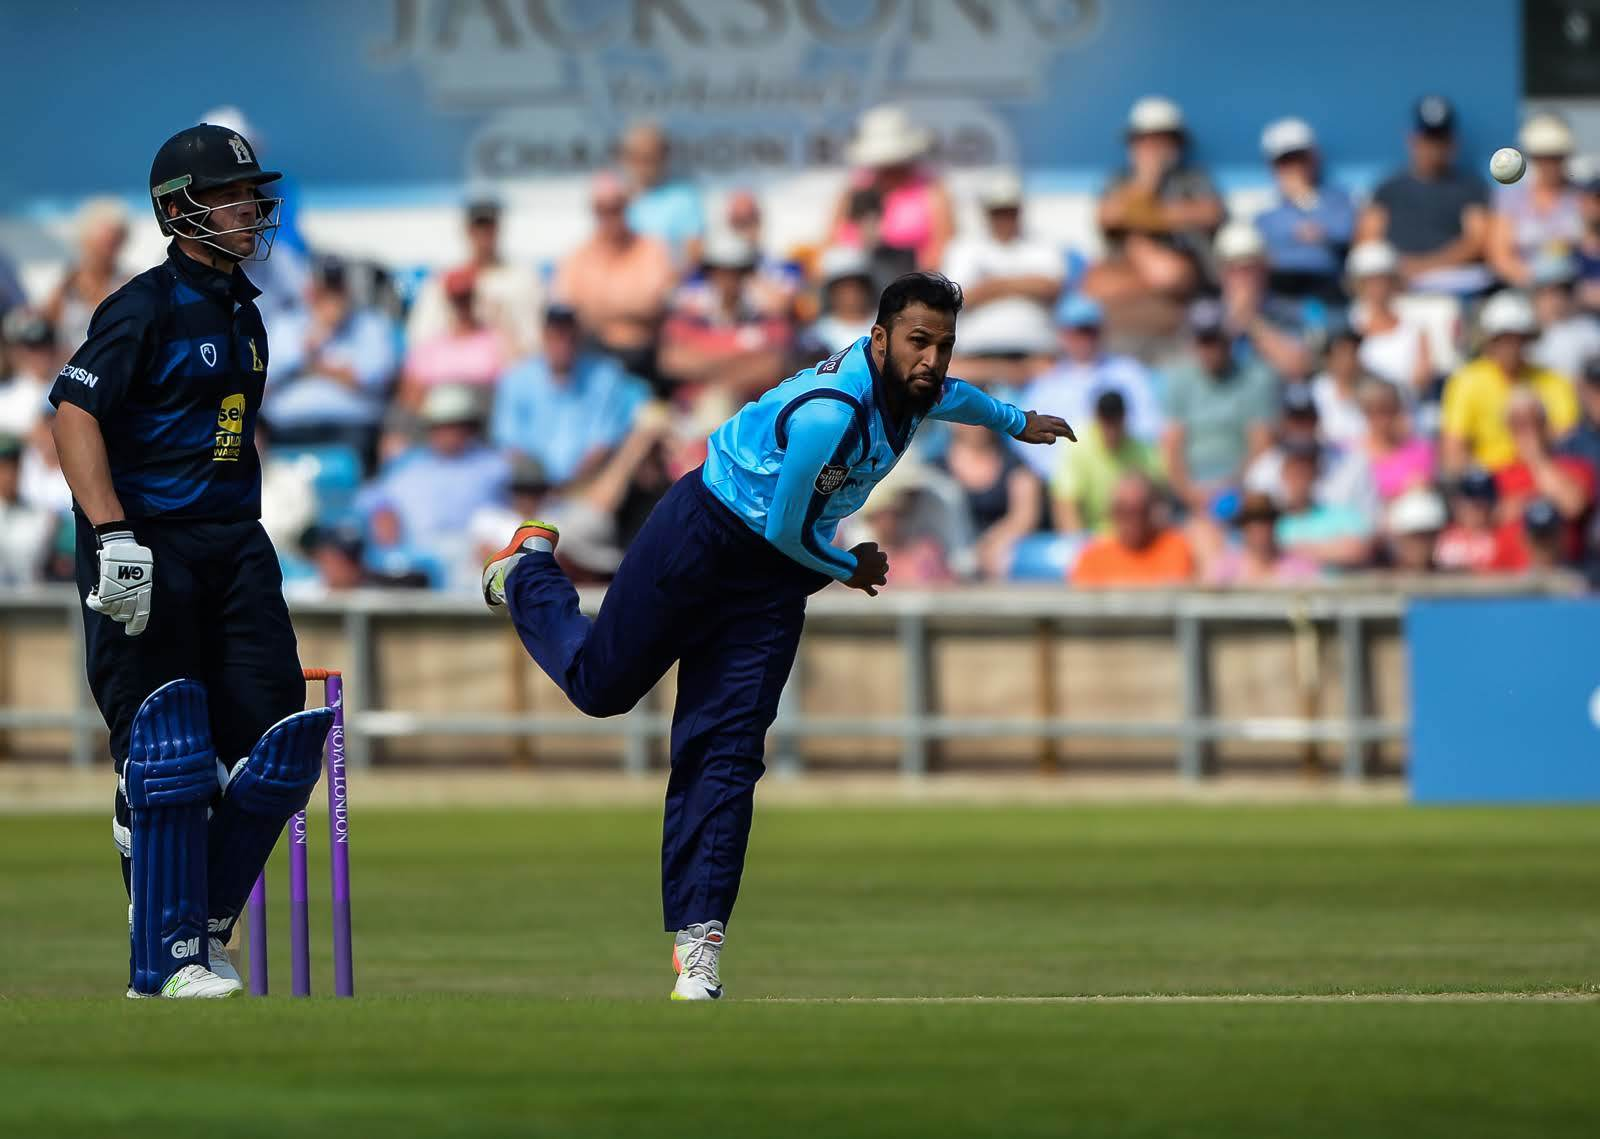 Adil Rashid, who has now departed for England duty - leaving Josh Poysden as Yorkshire's number-one spinner. Picture: Ray Spencer